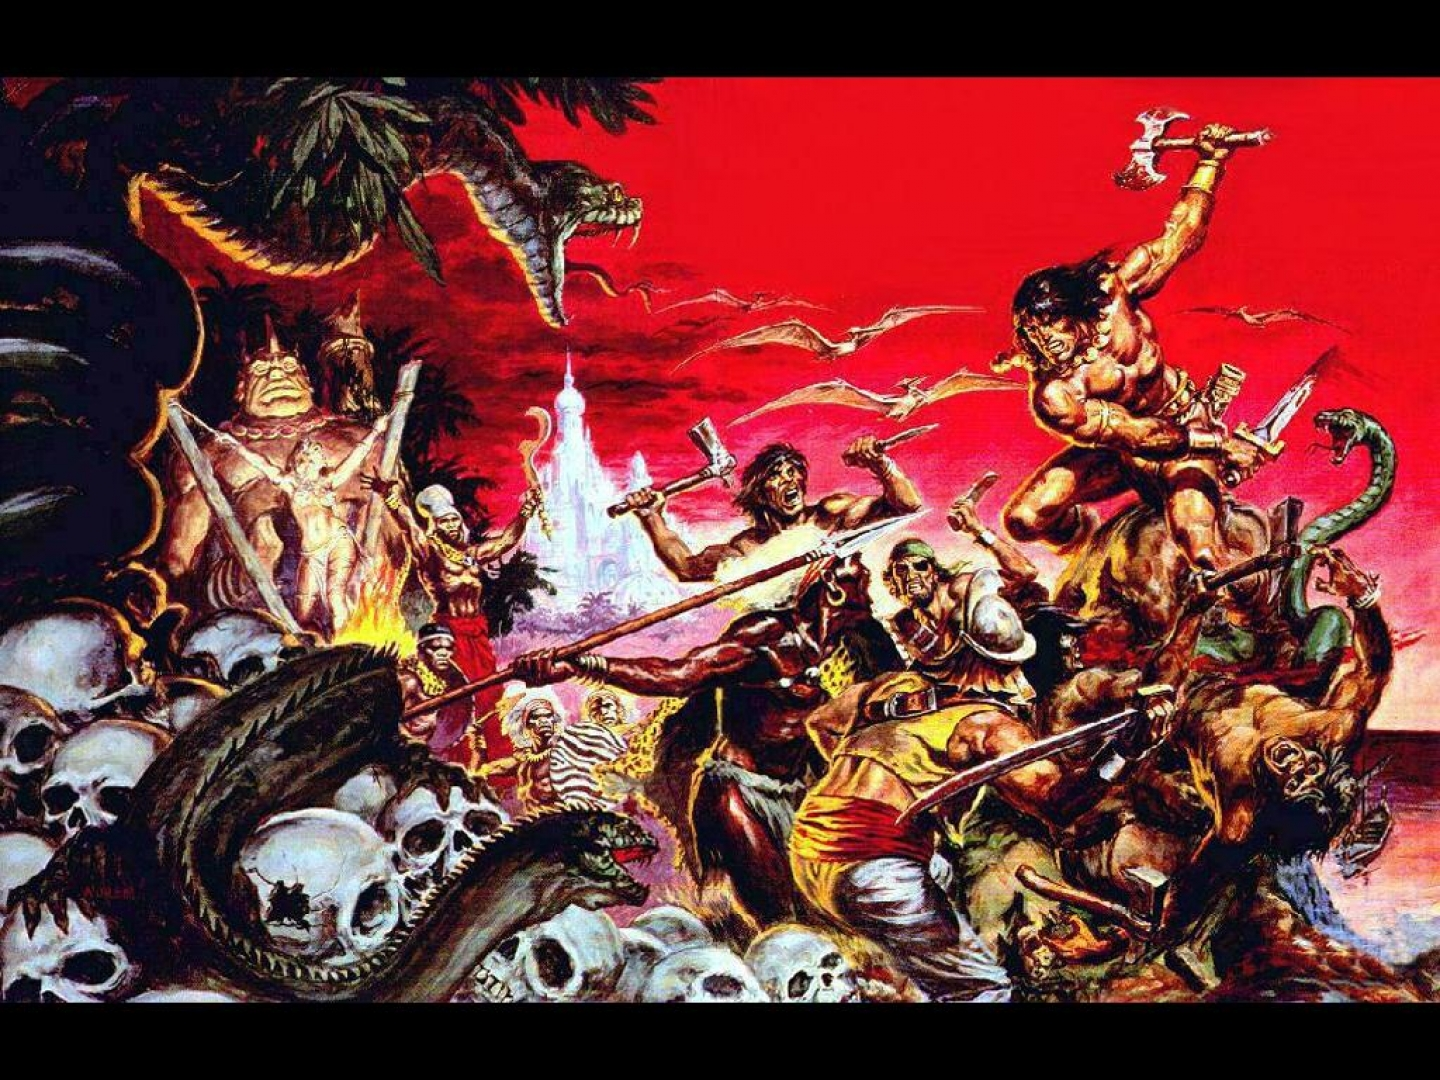 conan the barbarian Computer Wallpapers Desktop Backgrounds 1440x1080